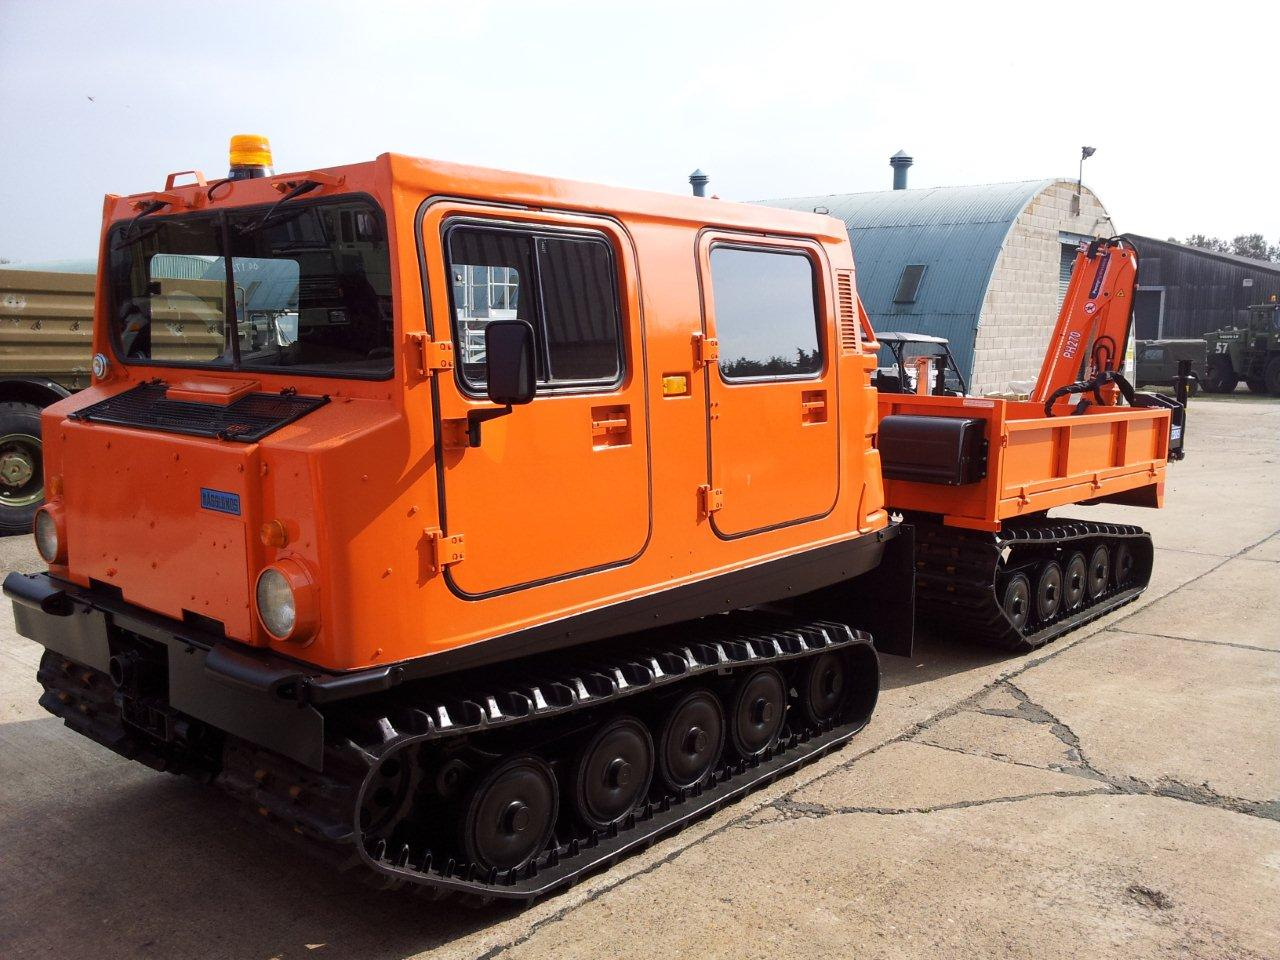 Hagglund  BV206 Cargo Carrier with Crane for sale | military vehicles